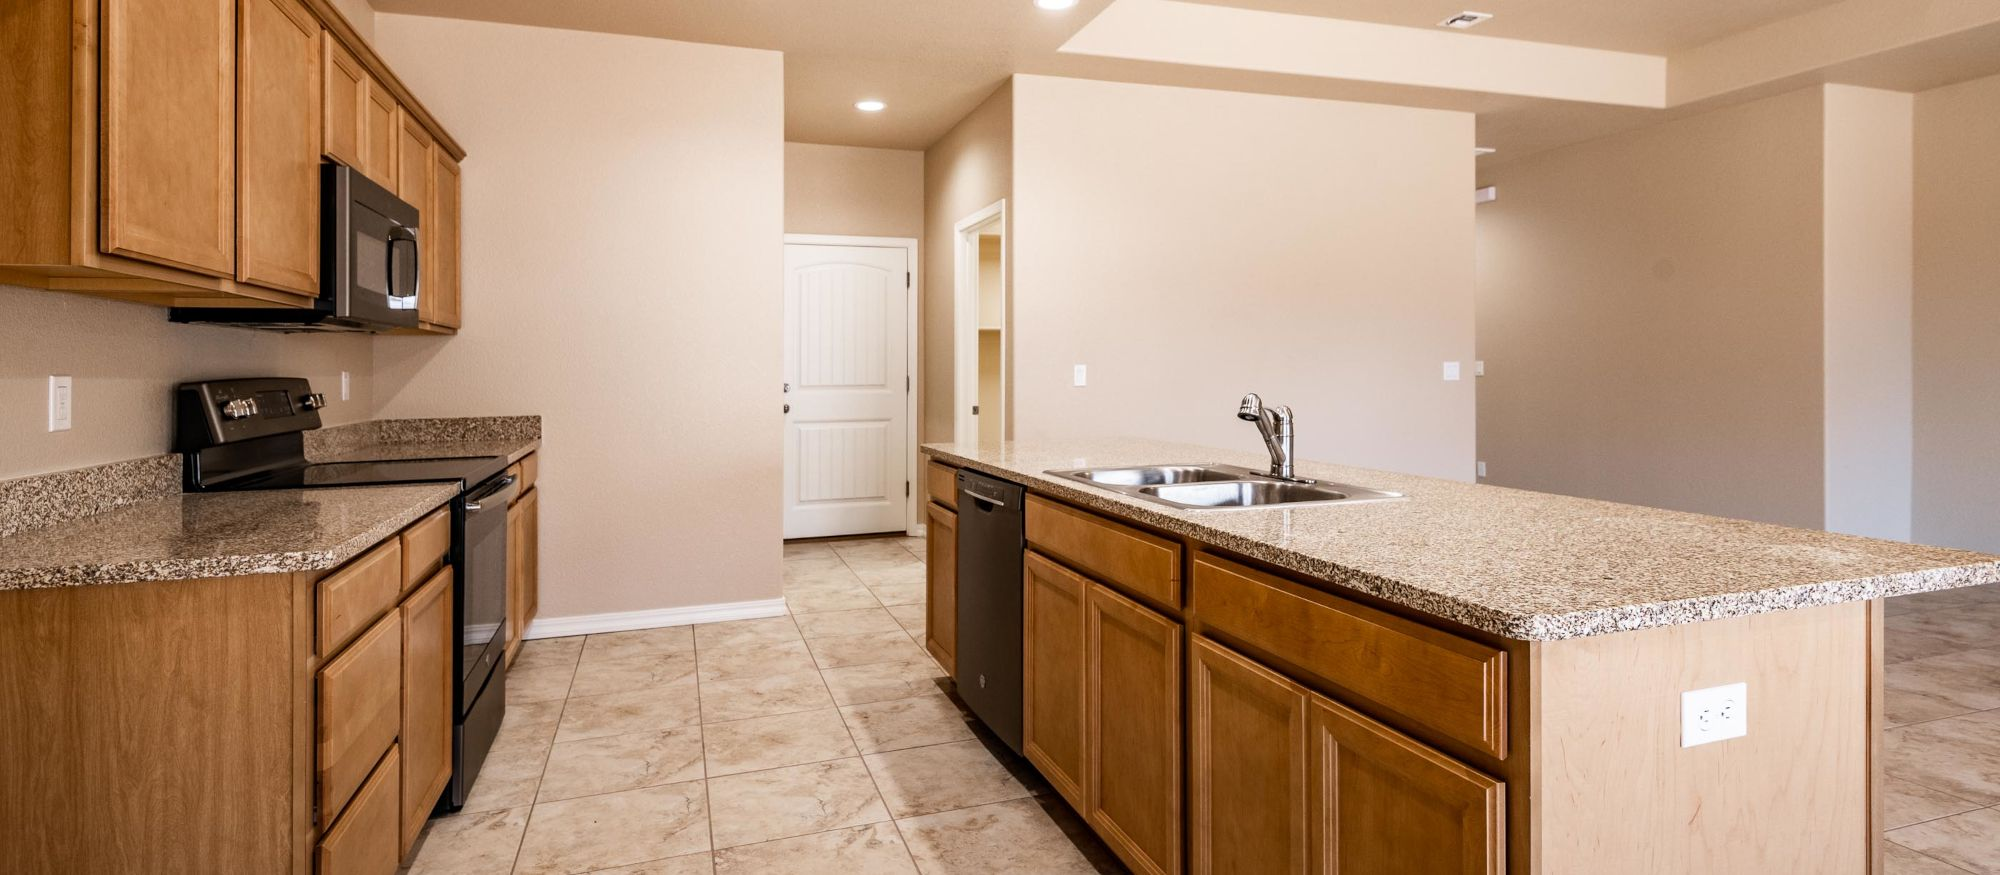 Kitchen featured in the Ironwood 1593 3 Car By Angle Homes in Kingman-Lake Havasu City, AZ